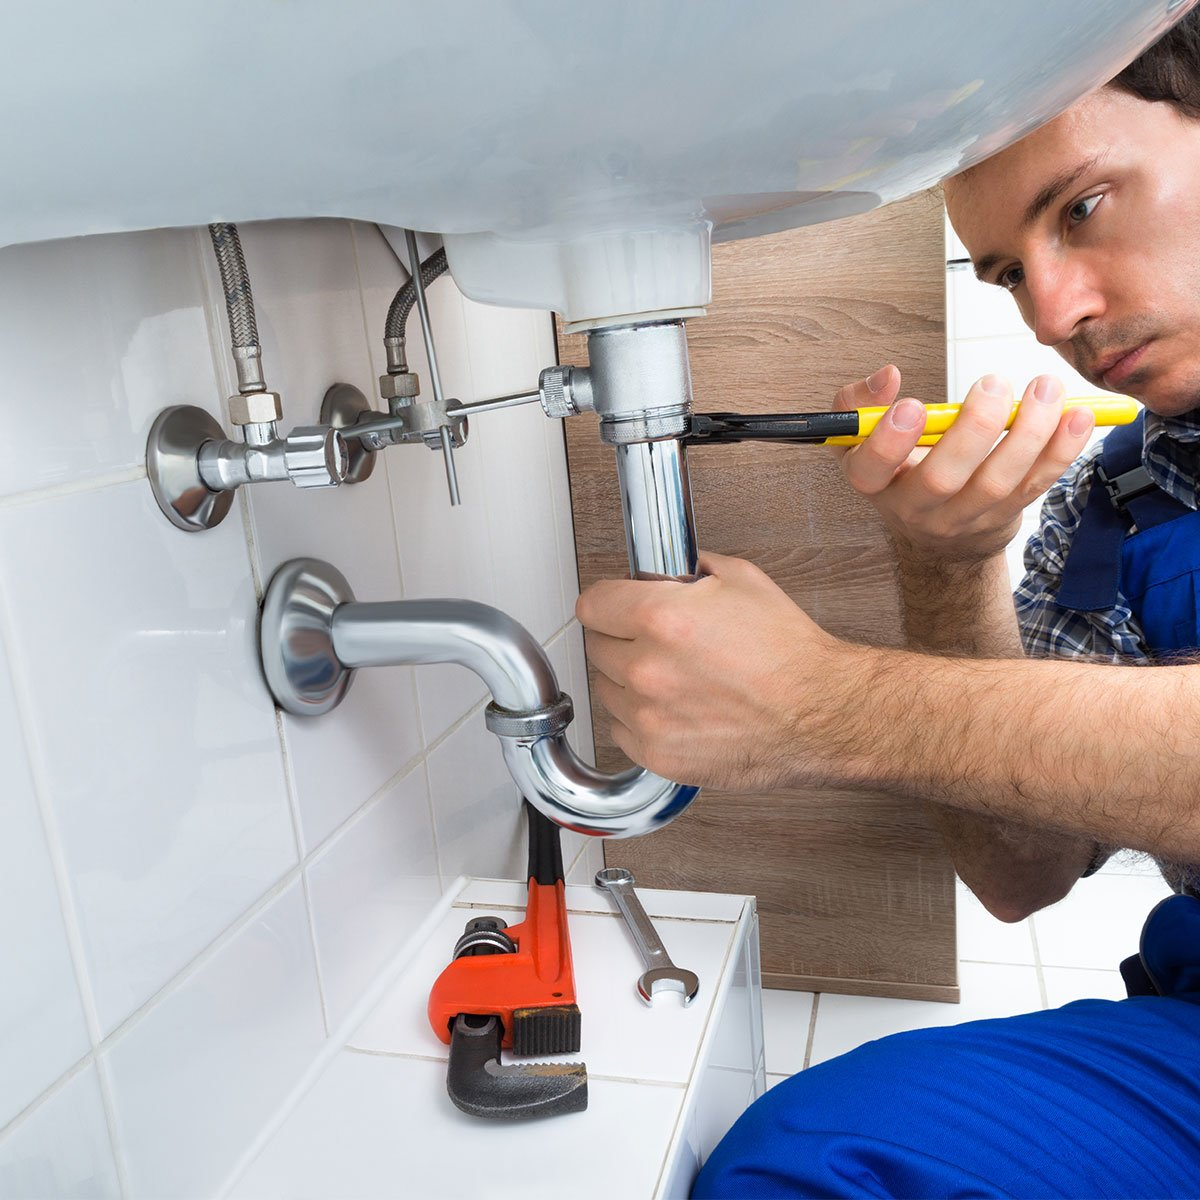 man fitting pipes under sink